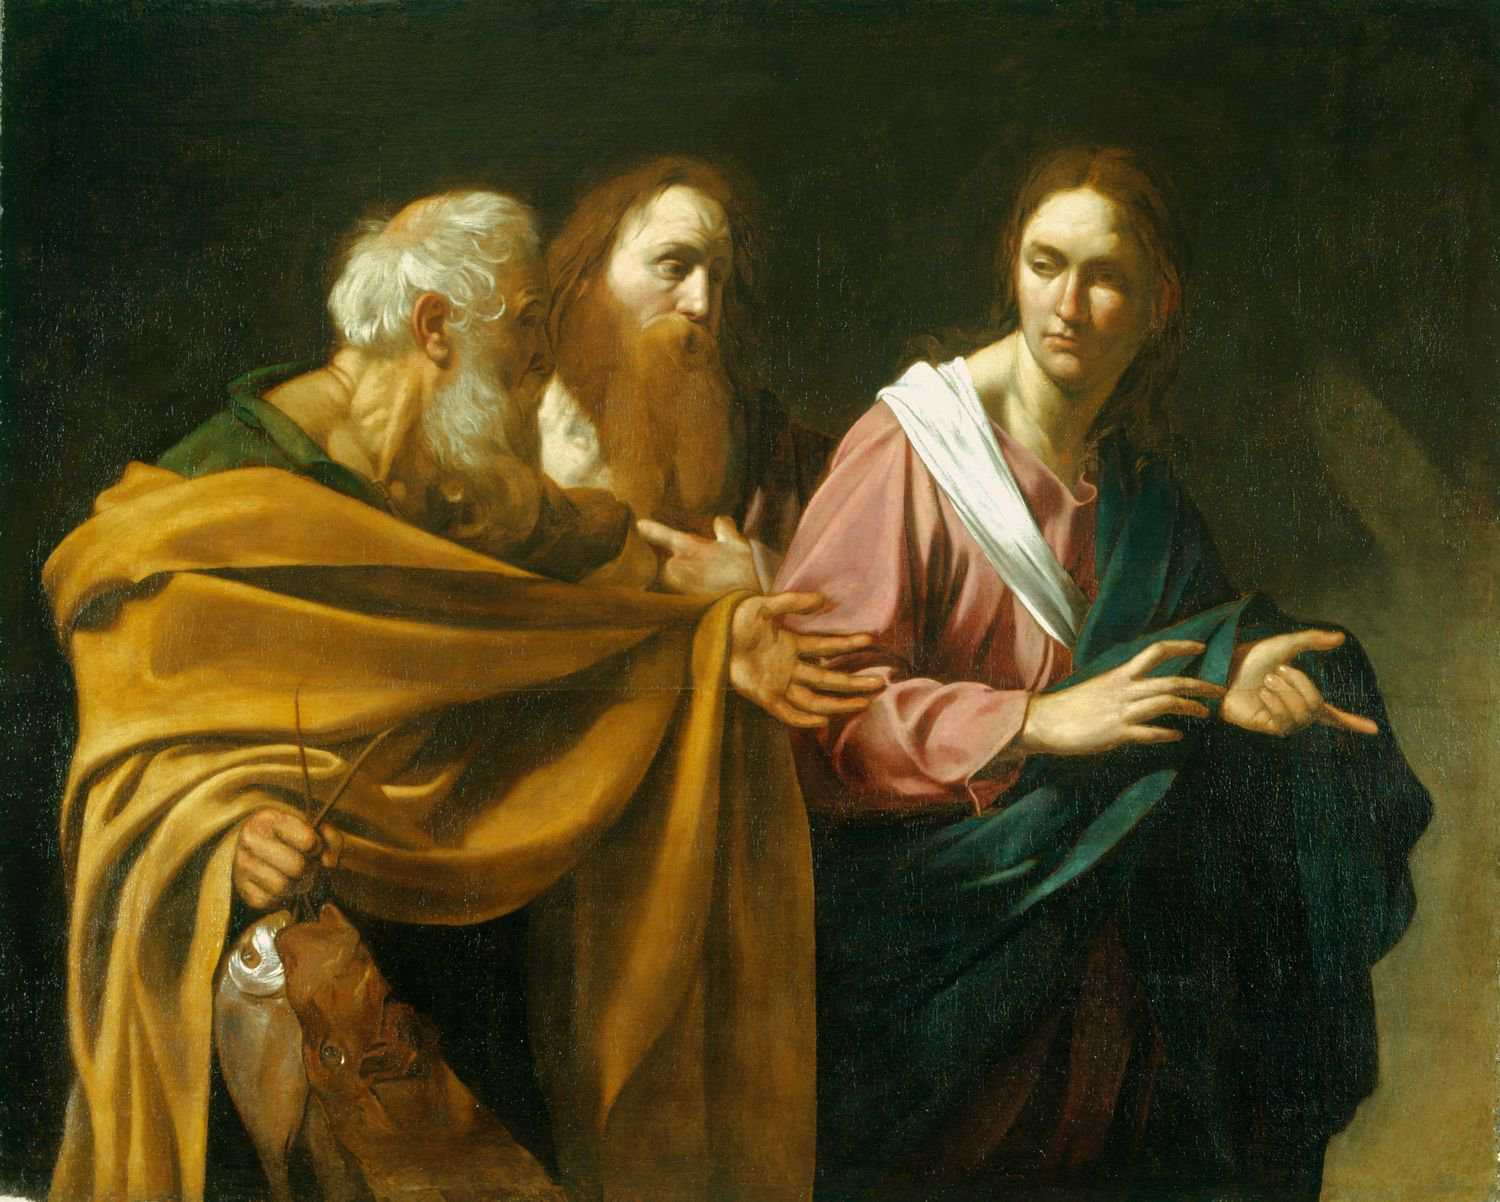 The painting by Caravaggio entitled Calling of the Apostles Peter and Andrew with Andrew on the left. Image taken from wikimedia.